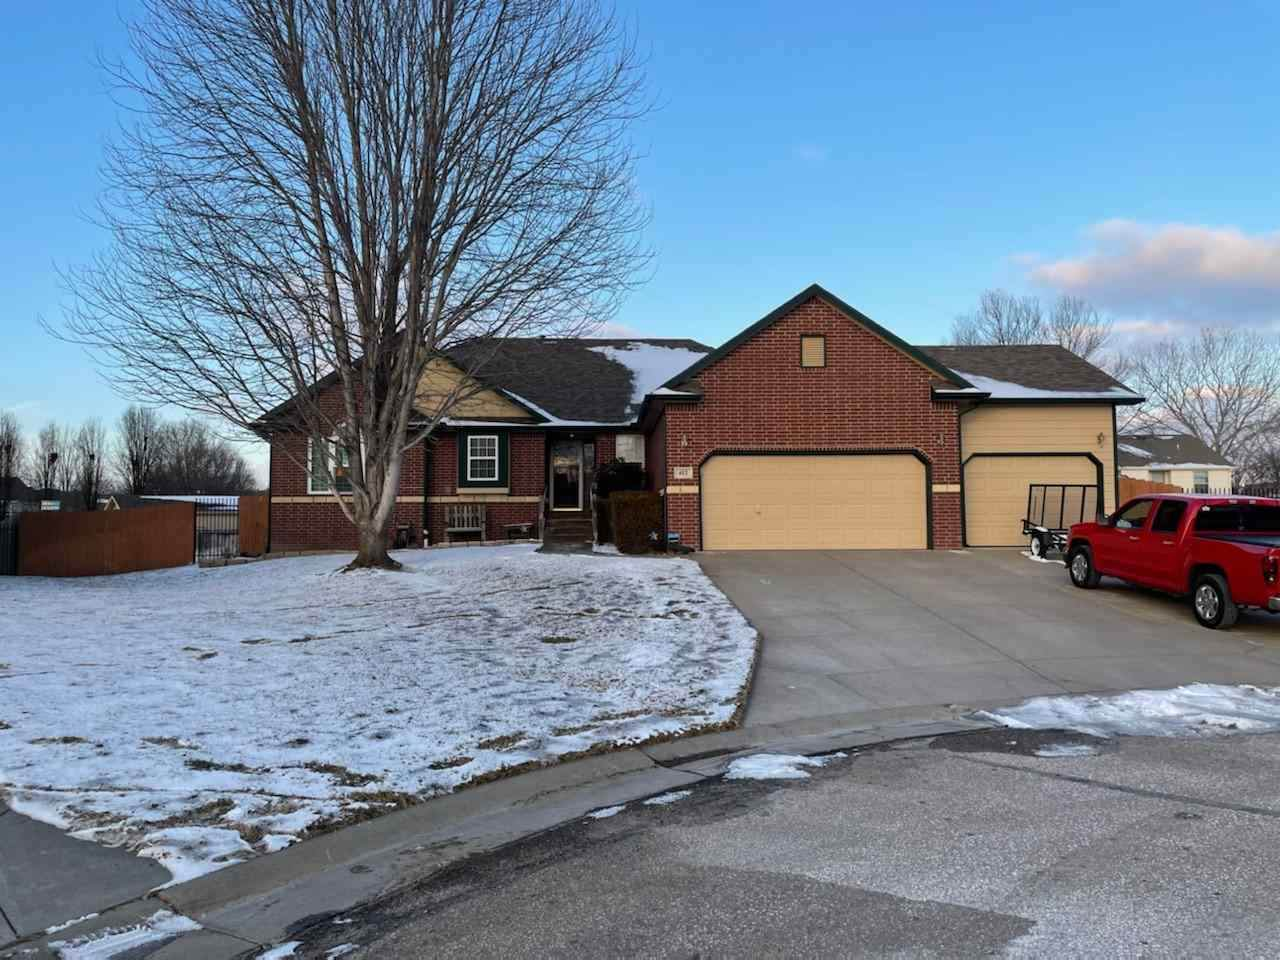 412 Countryn Hills Ct - Photo 1